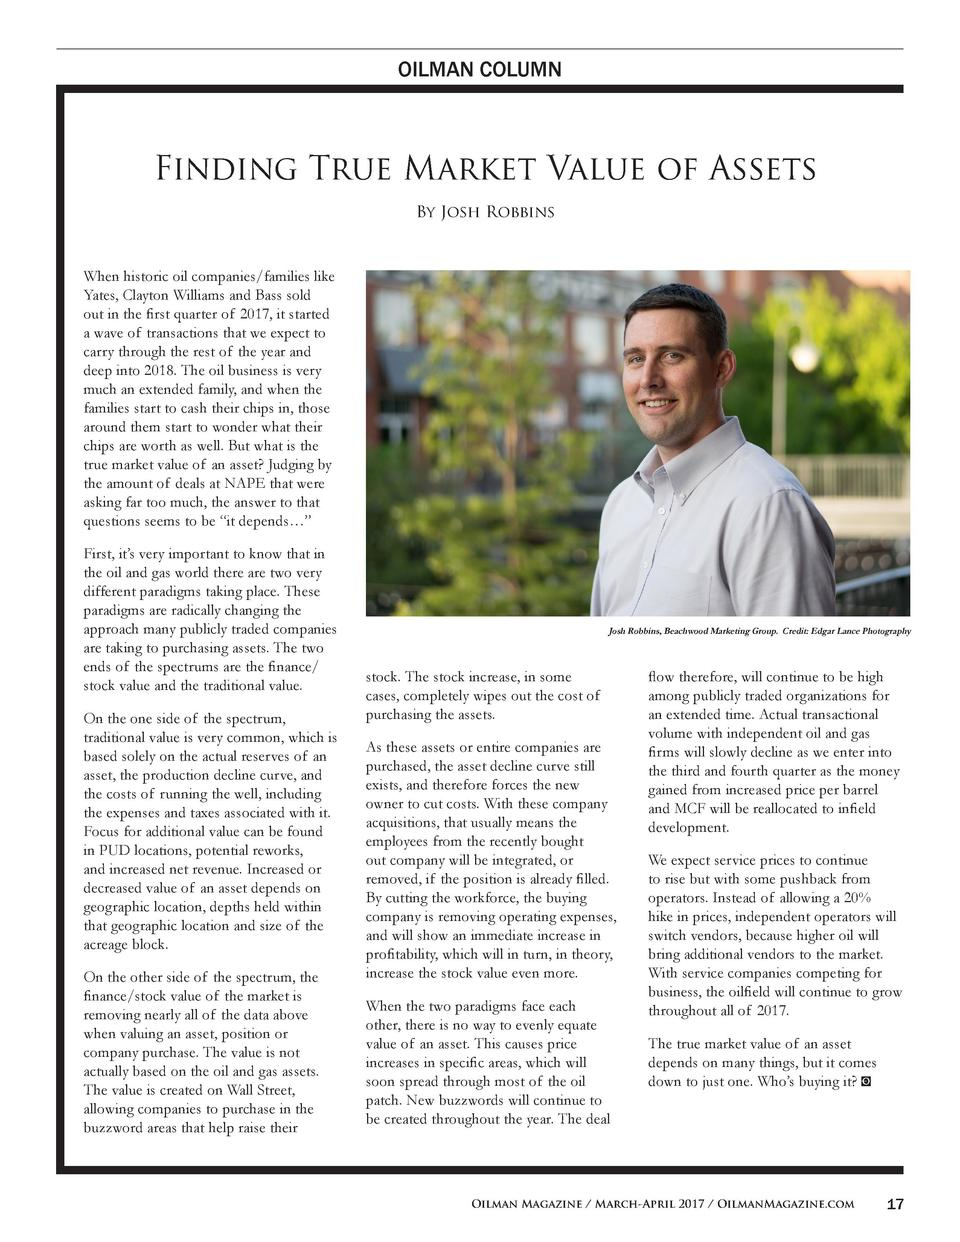 OILMAN COLUMN  Finding True Market Value of Assets By Josh Robbins  When historic oil companies families like Yates, Clayt...